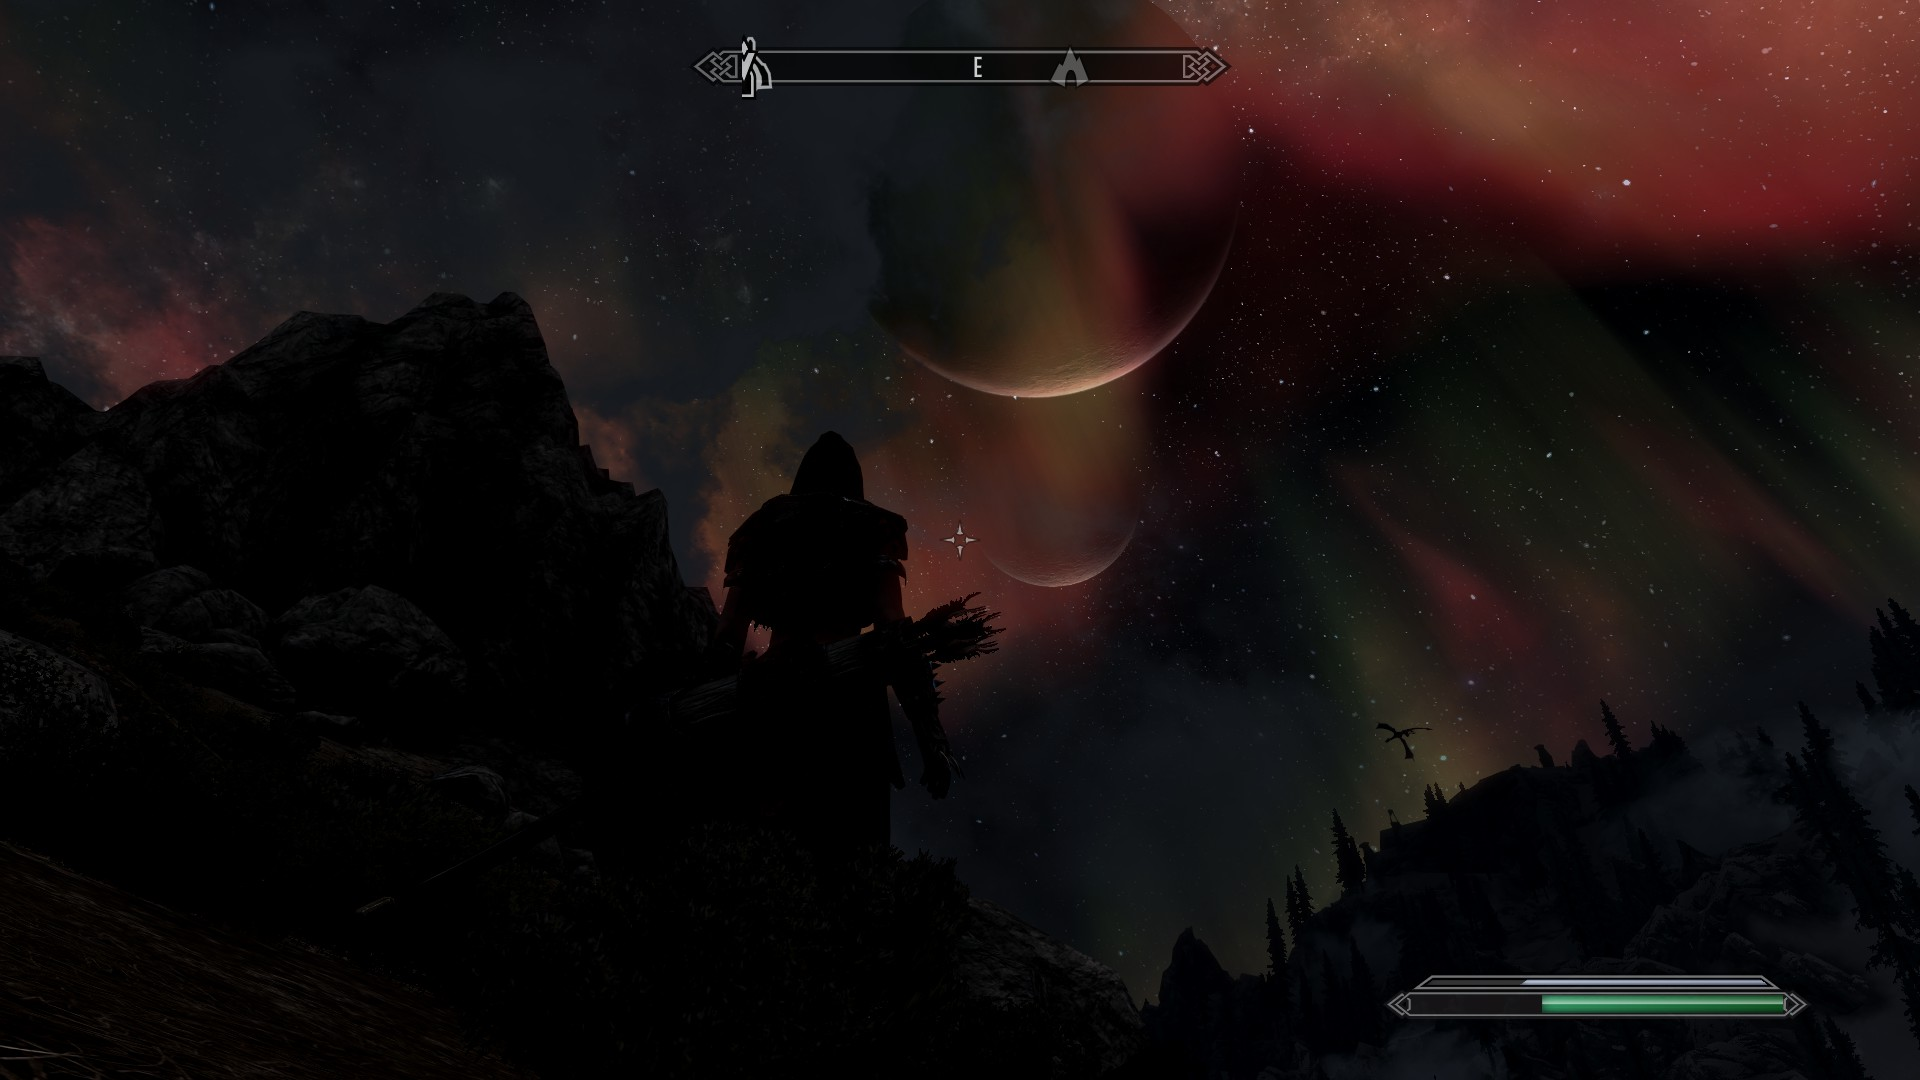 This game never fails to impress me